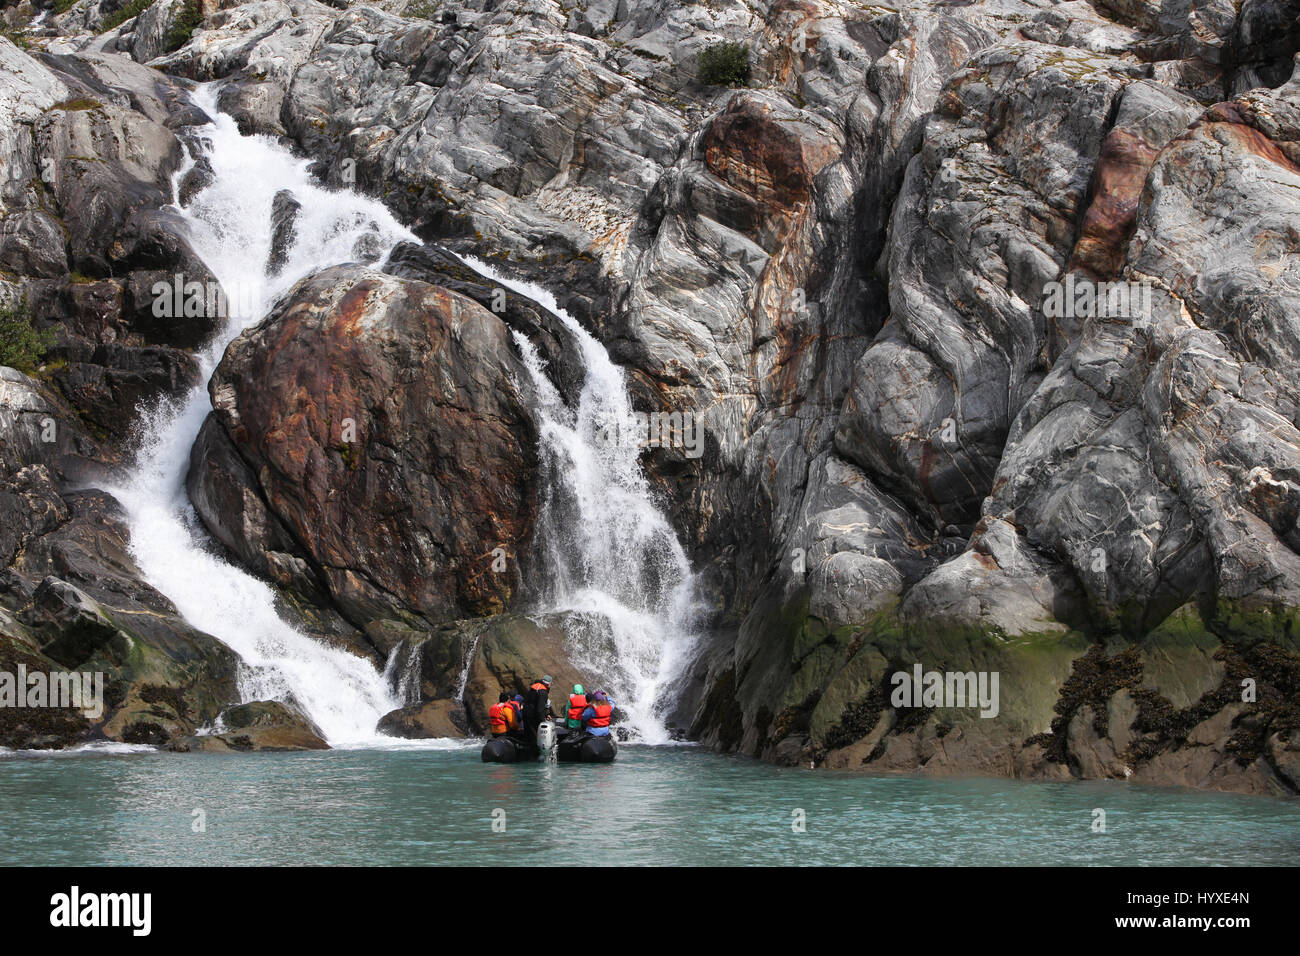 Travelers in a Zodiak boat navigate near a waterfall that was formed from glacier runoff. - Stock Image